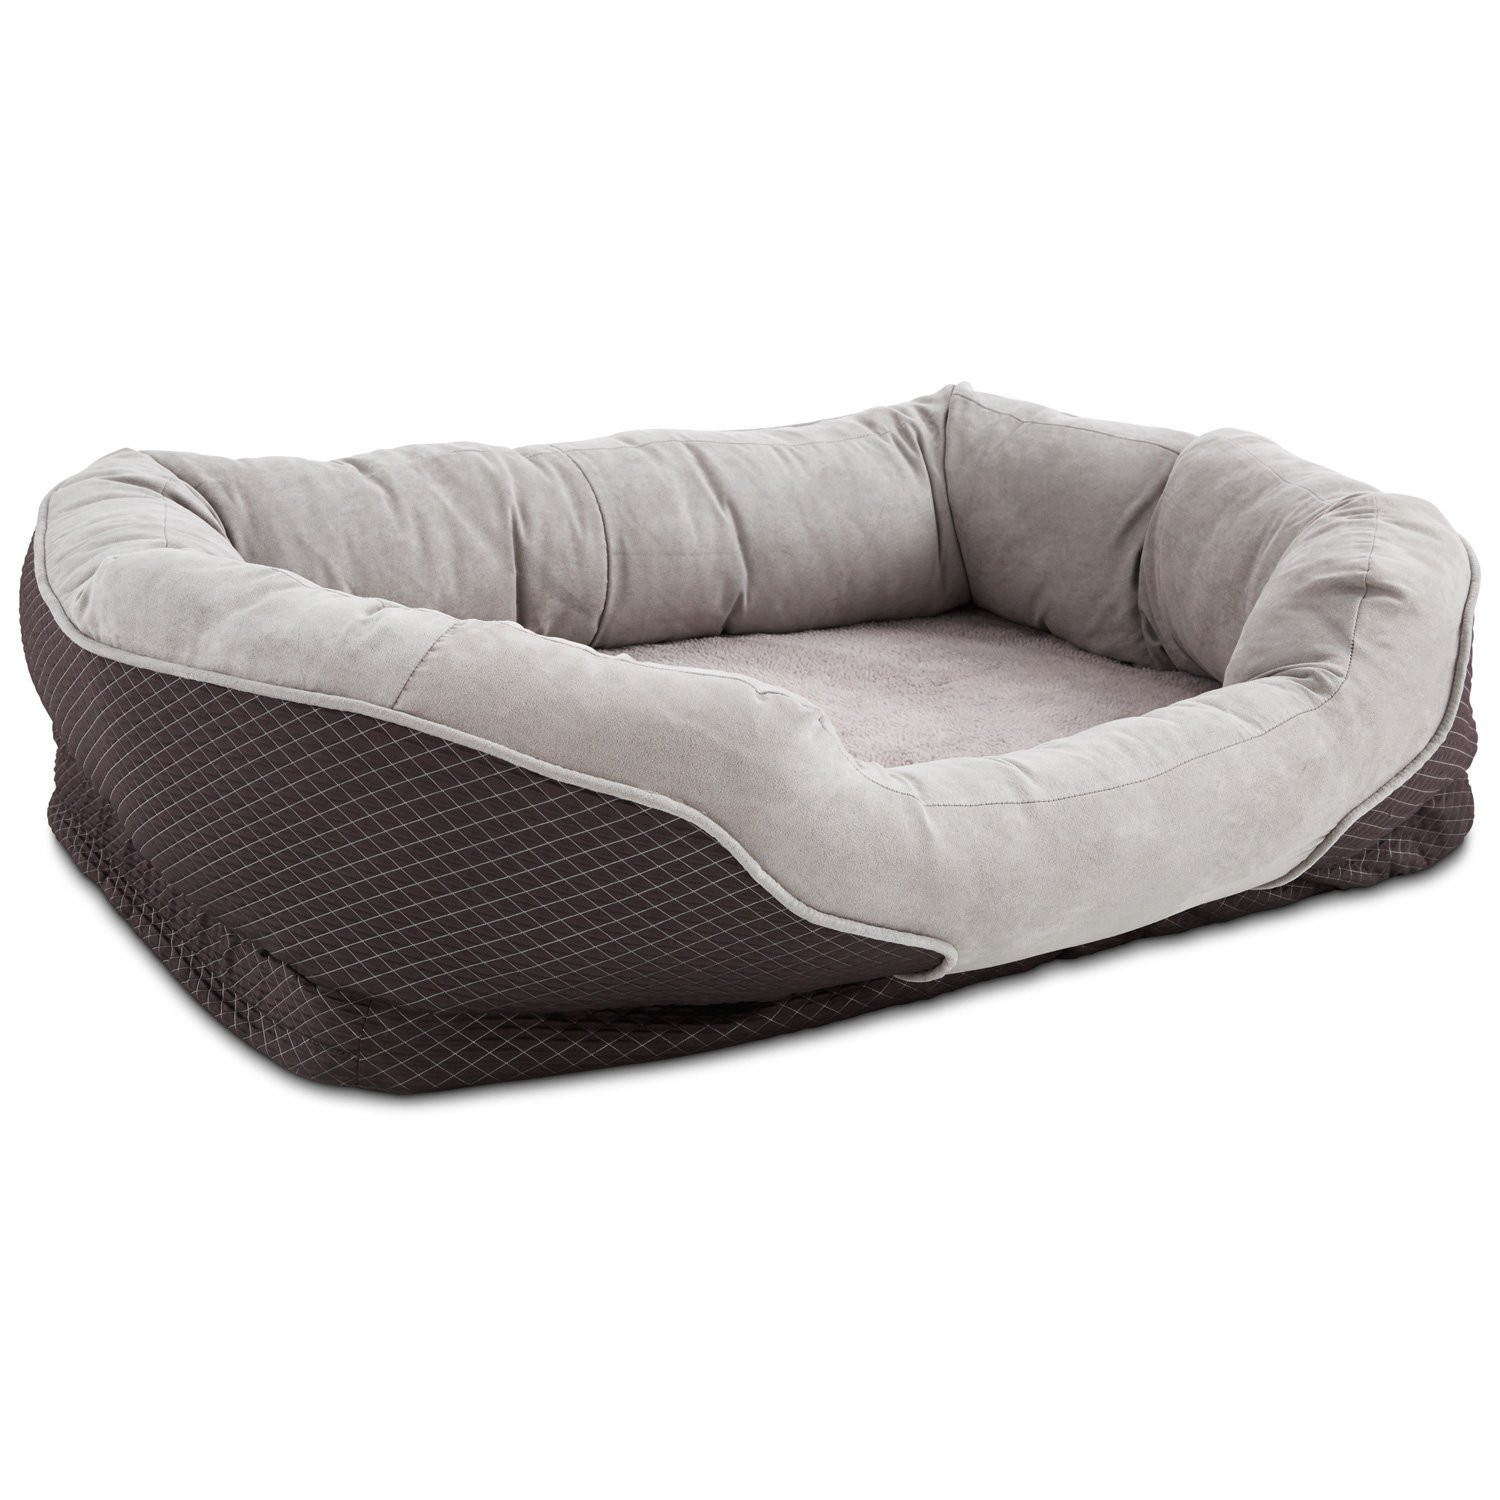 orthopedic peaceful nester gray dog bed petco